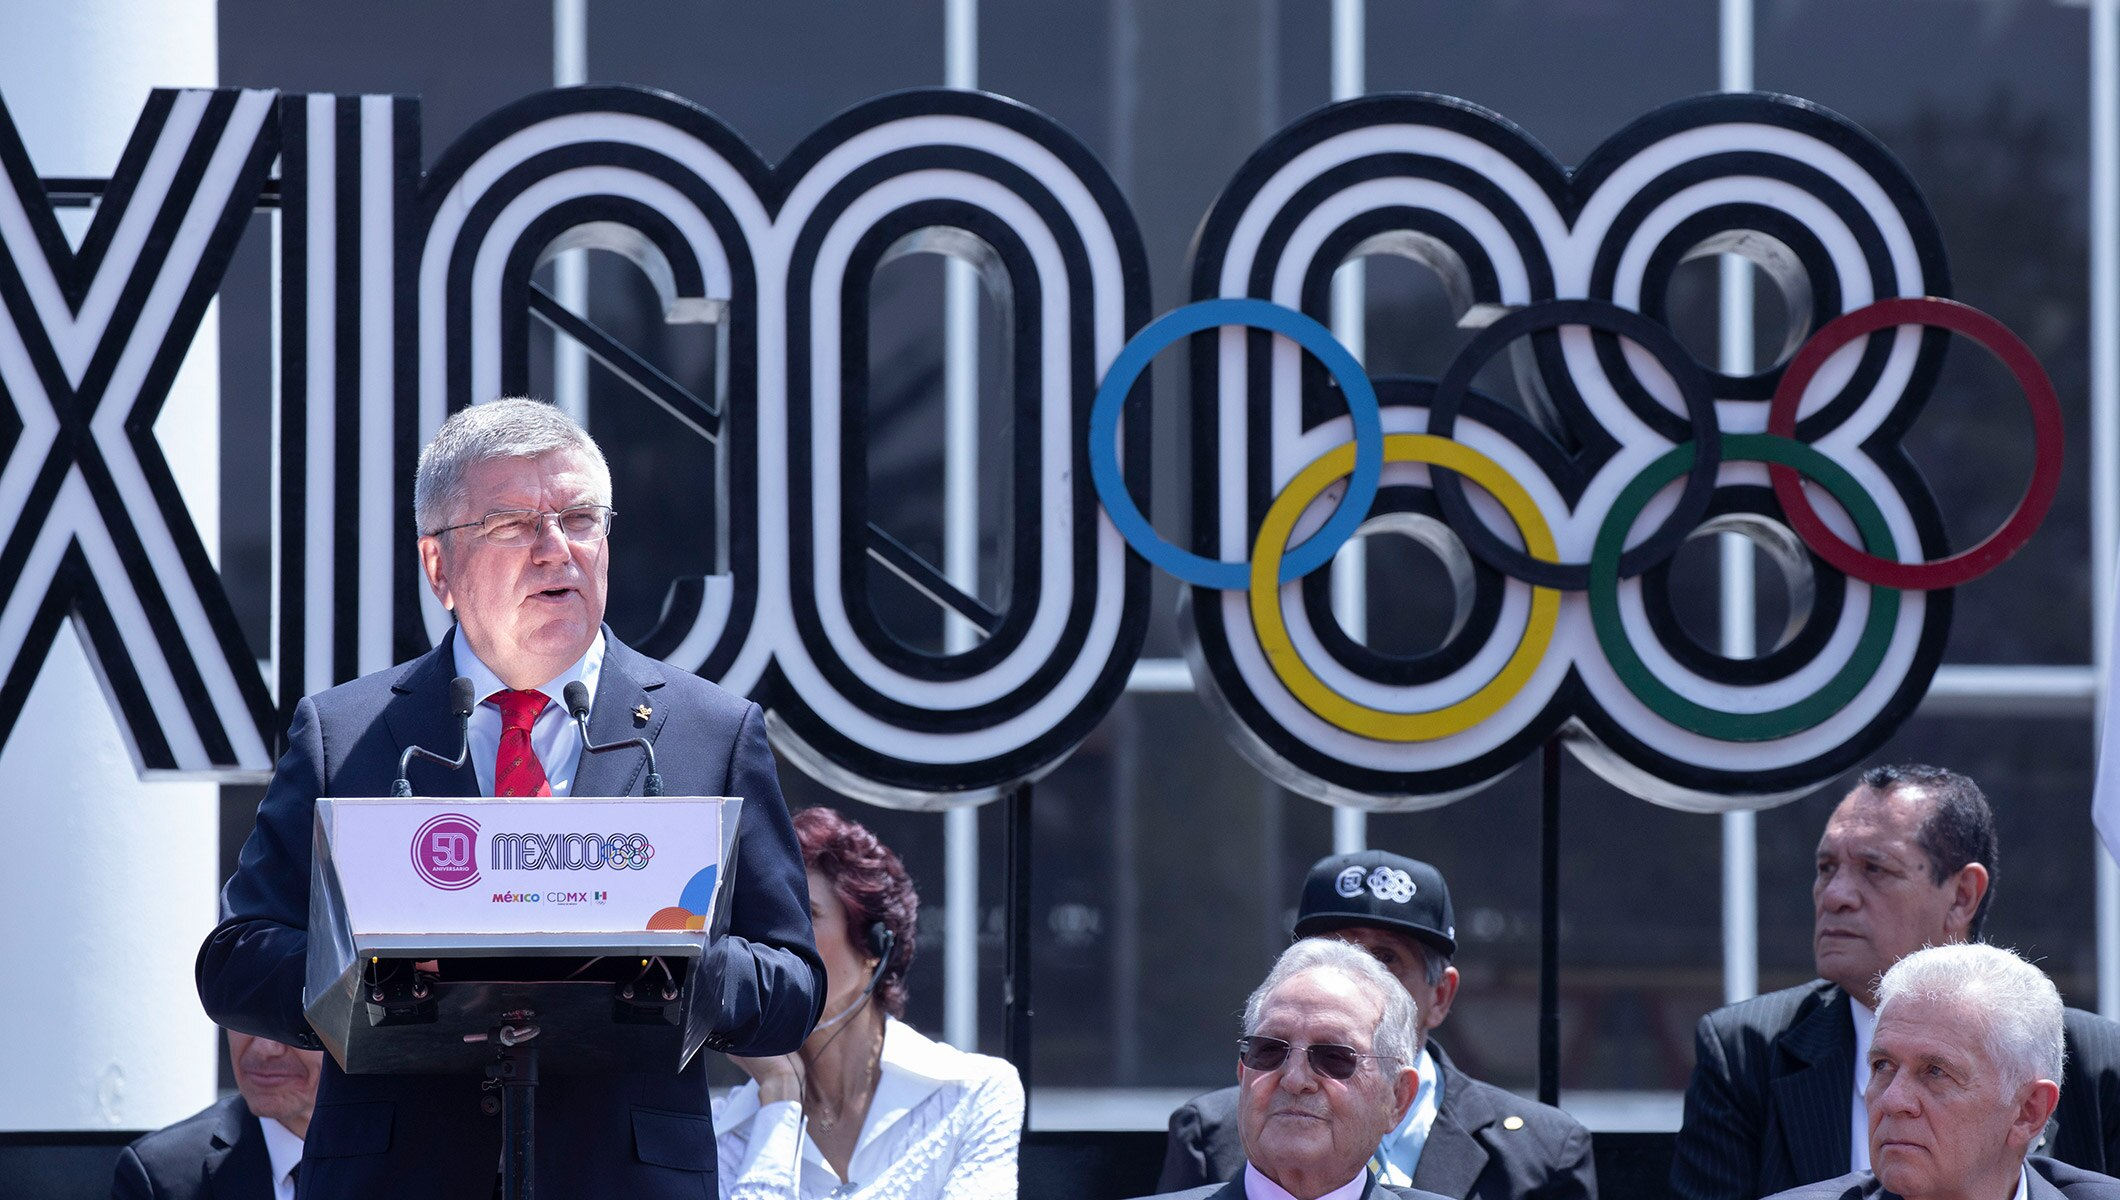 Thomas Bach, IOC President attends the celebration of the 50th Anniversary of the Mexico 1968 Olympics in Mexico City